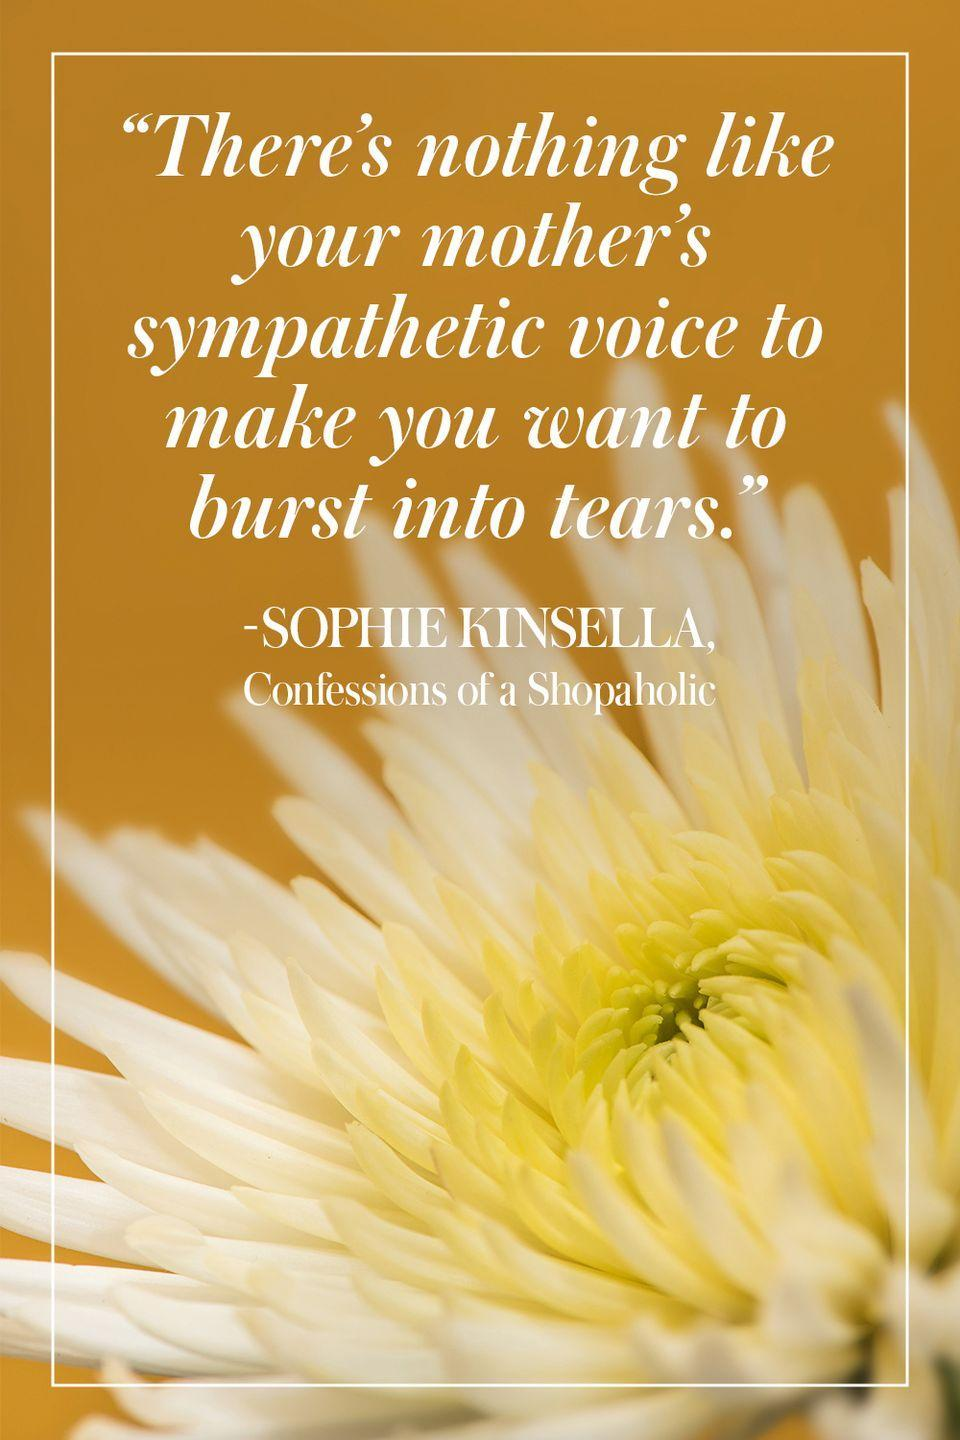 """<p>""""There's nothing like your mother's sympathetic voice to make you want to burst into tears."""" </p><p>- Sophie Kinsella, <em>Confessions of a Shopaholic</em></p>"""